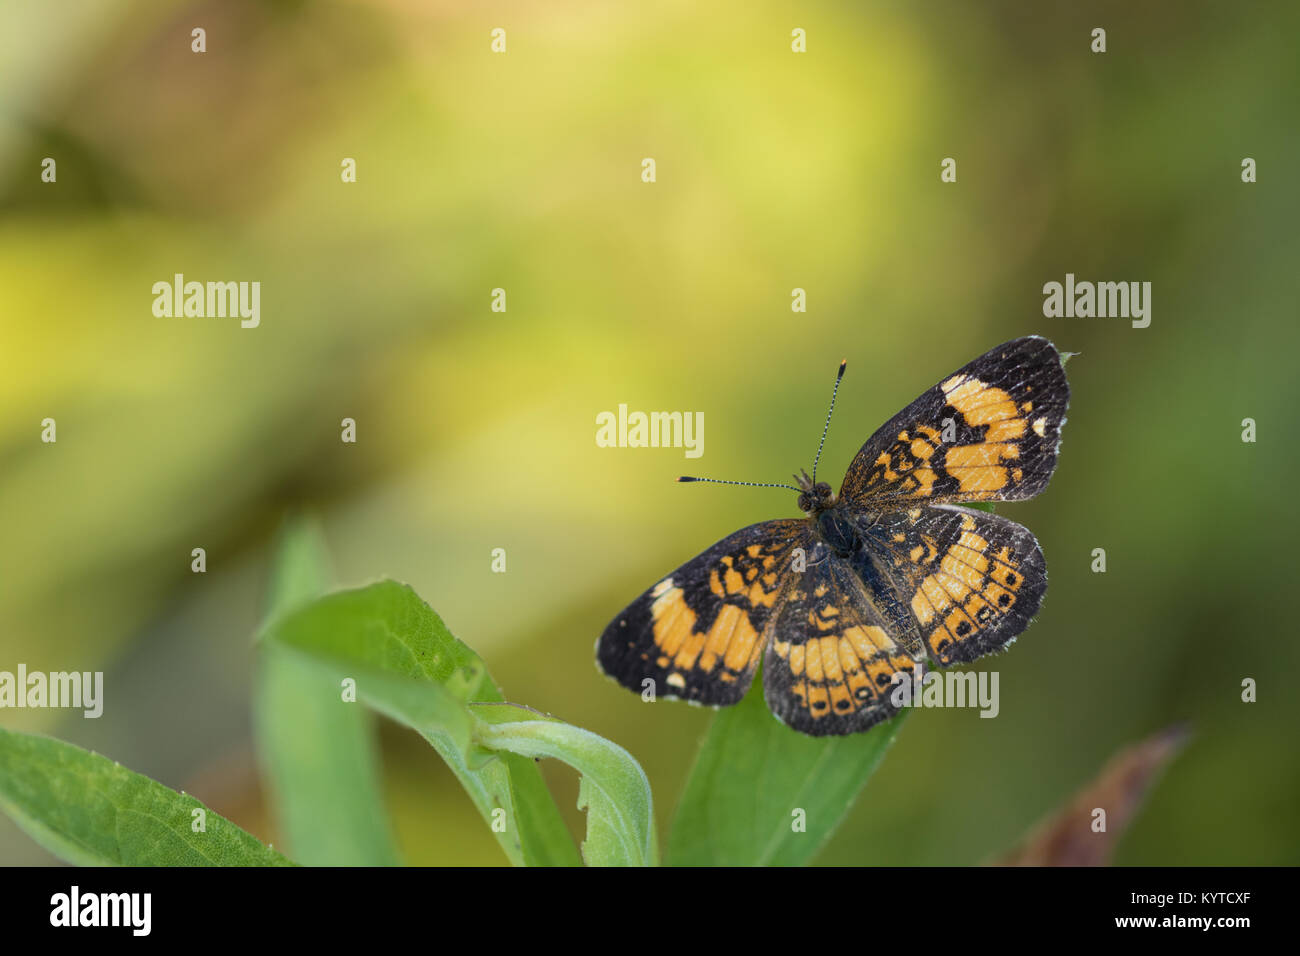 Pearl crescent Schmetterling (Phyciodes tharos) Stockfoto